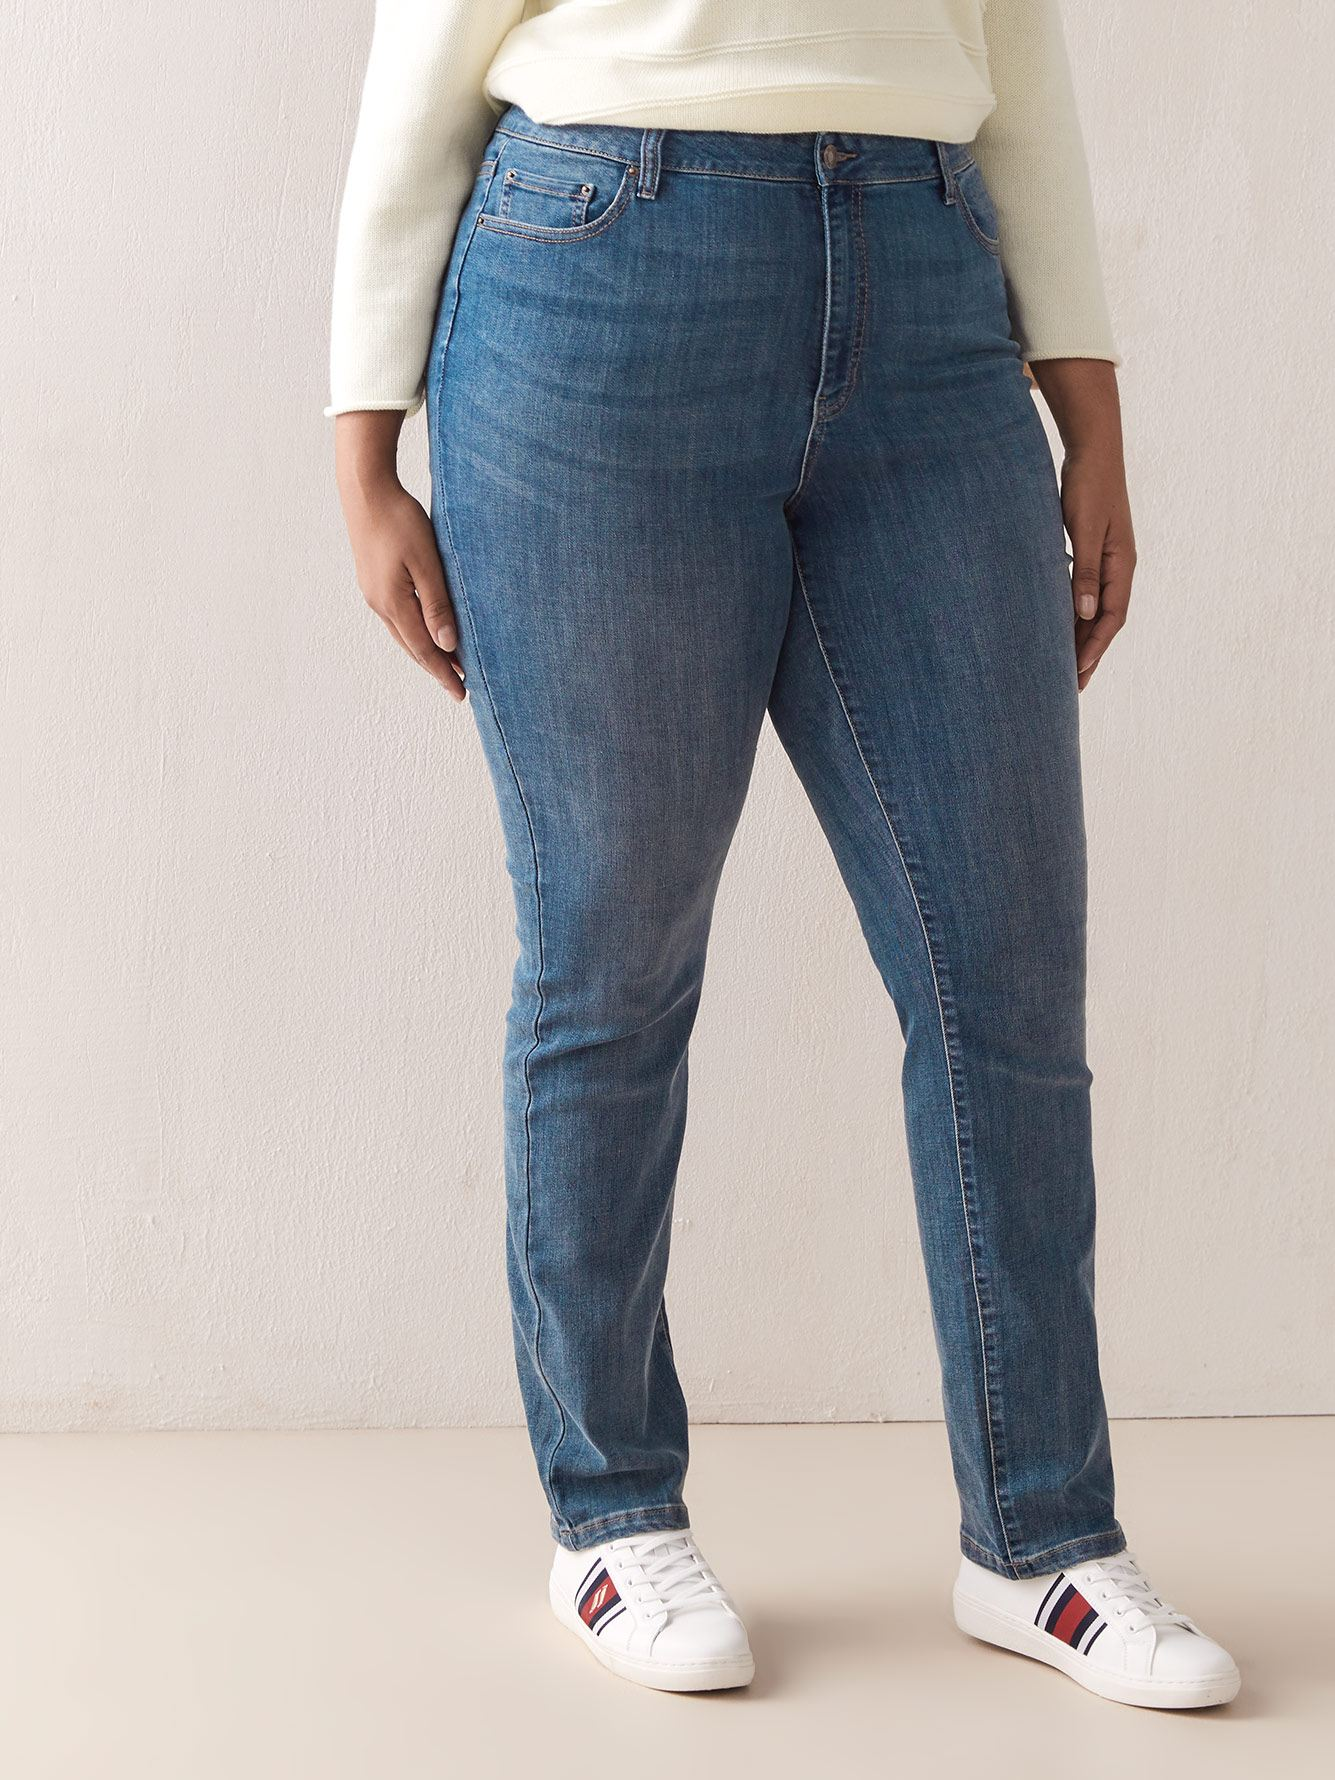 Universal Fit,Tall, Straight Leg Jean - d/C JEANS